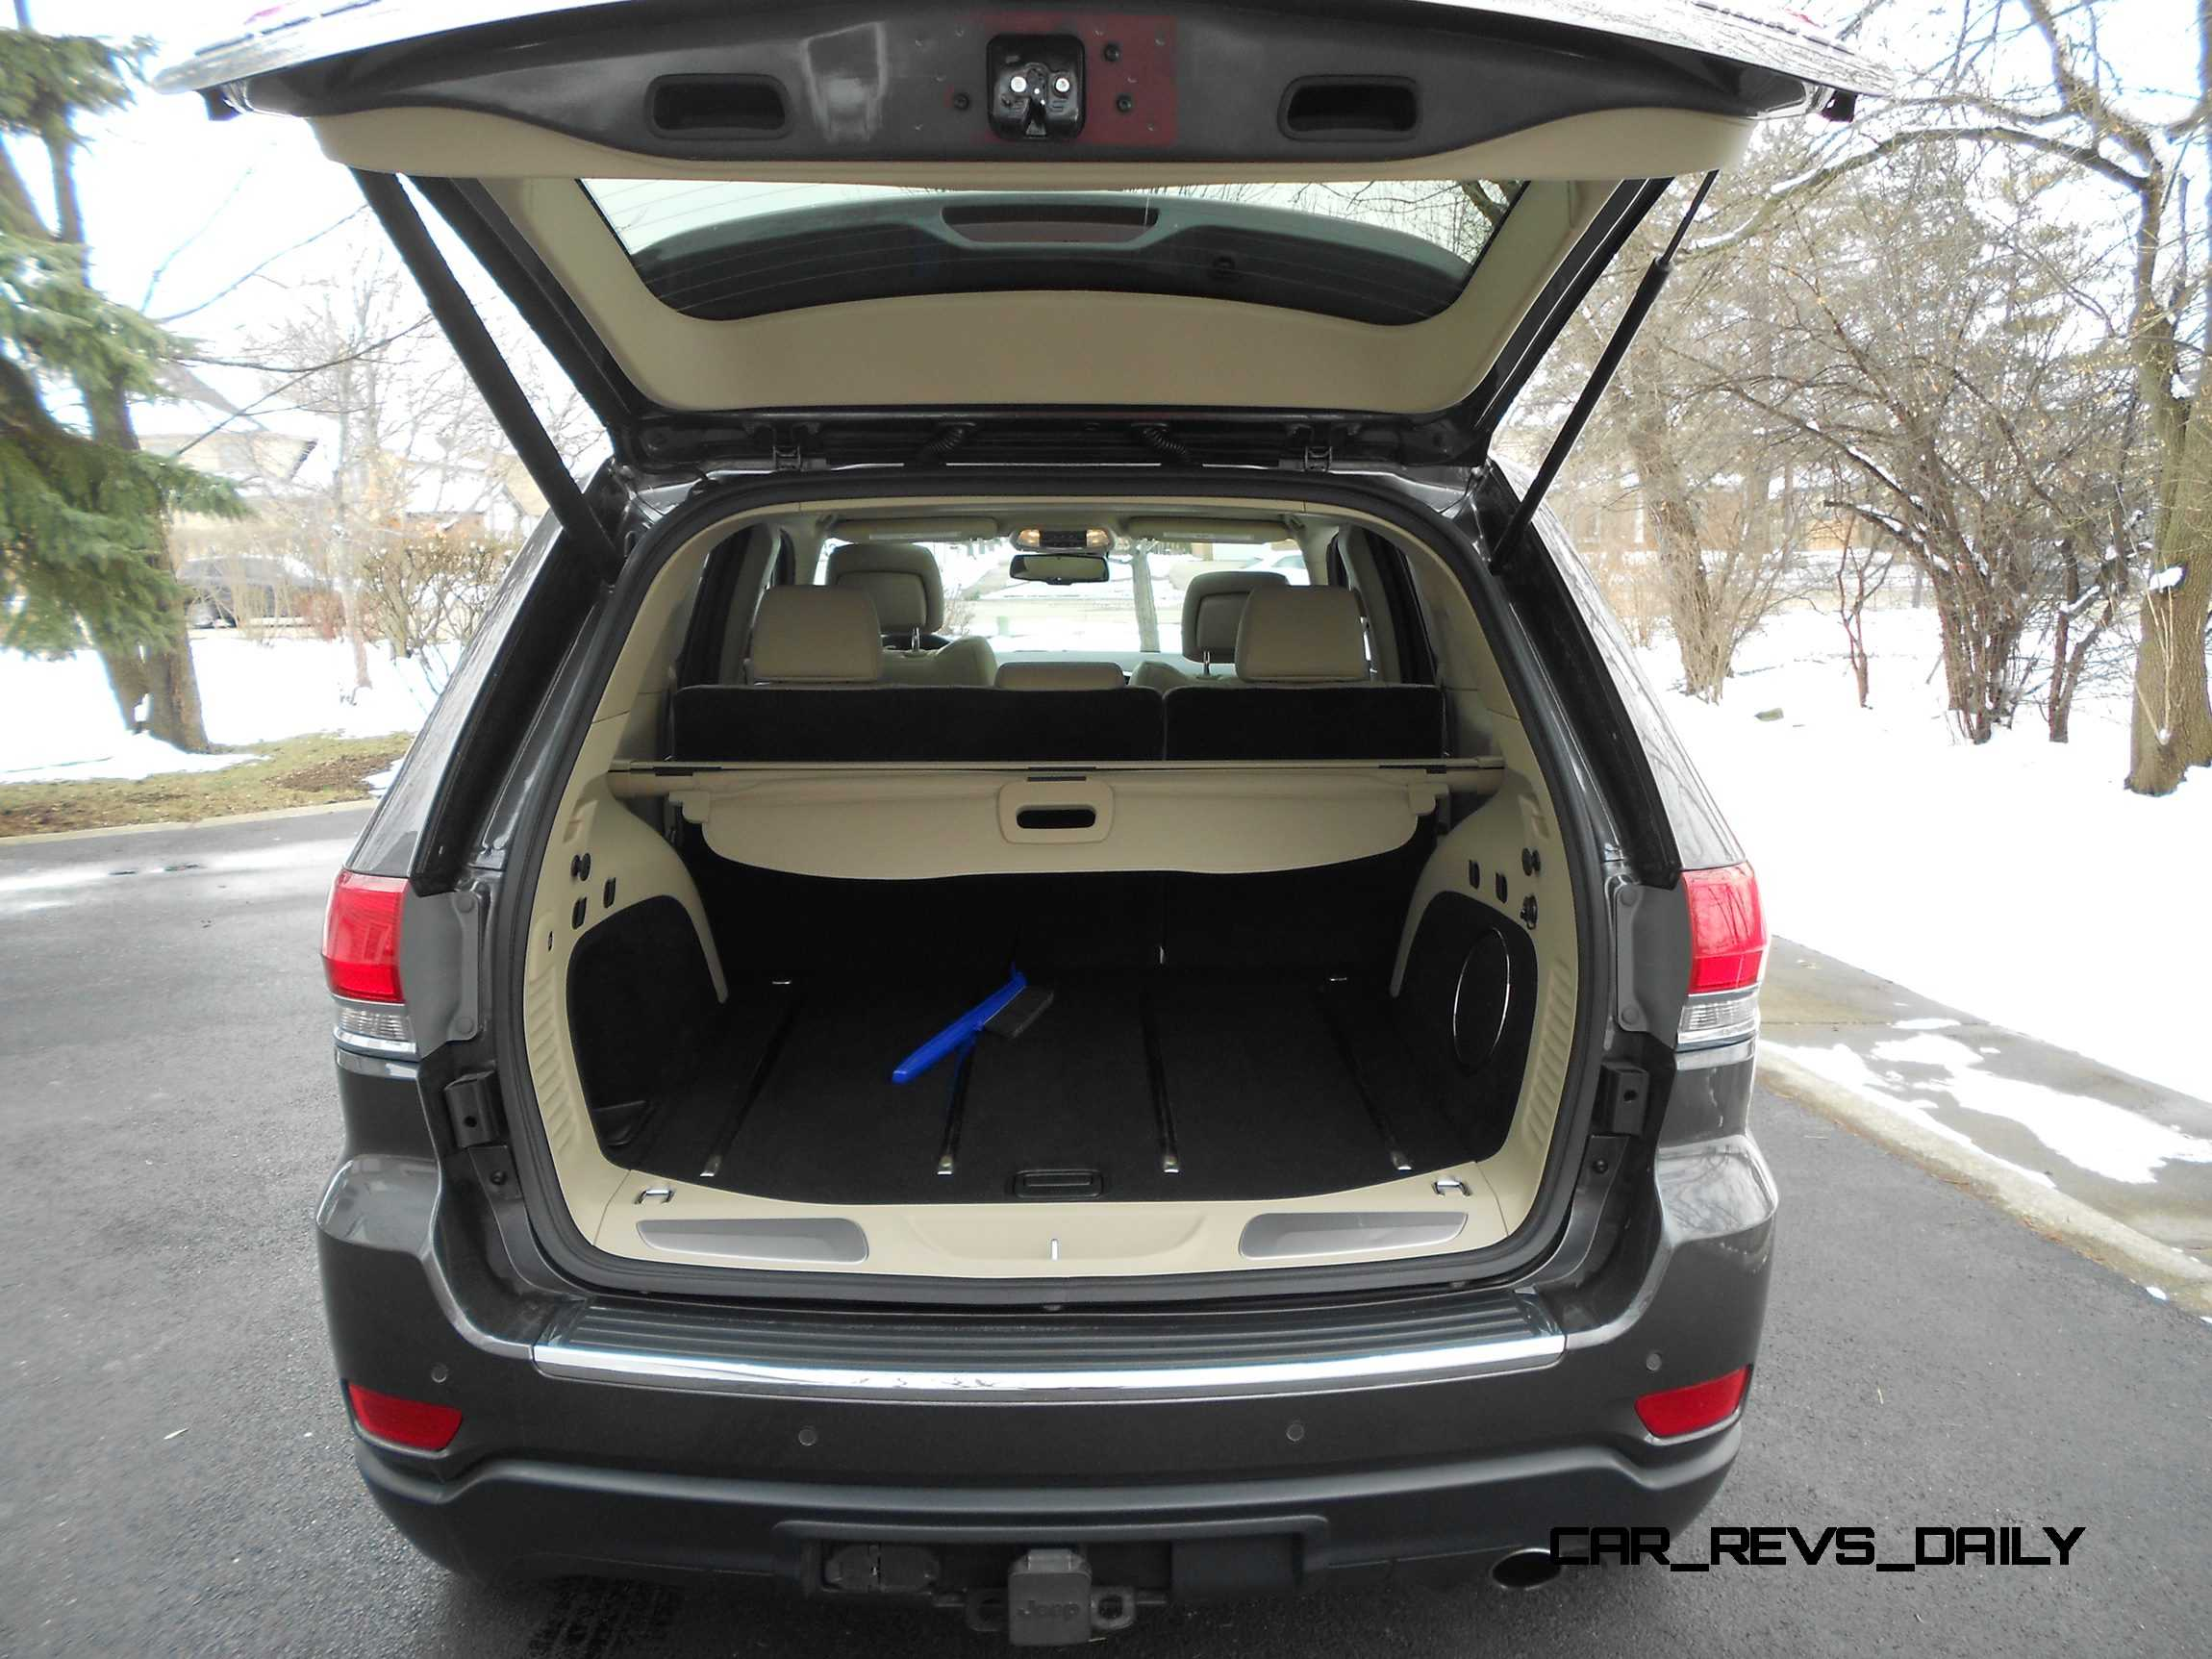 2015 jeep grand cherokee limited 4x4 9 car revs. Black Bedroom Furniture Sets. Home Design Ideas